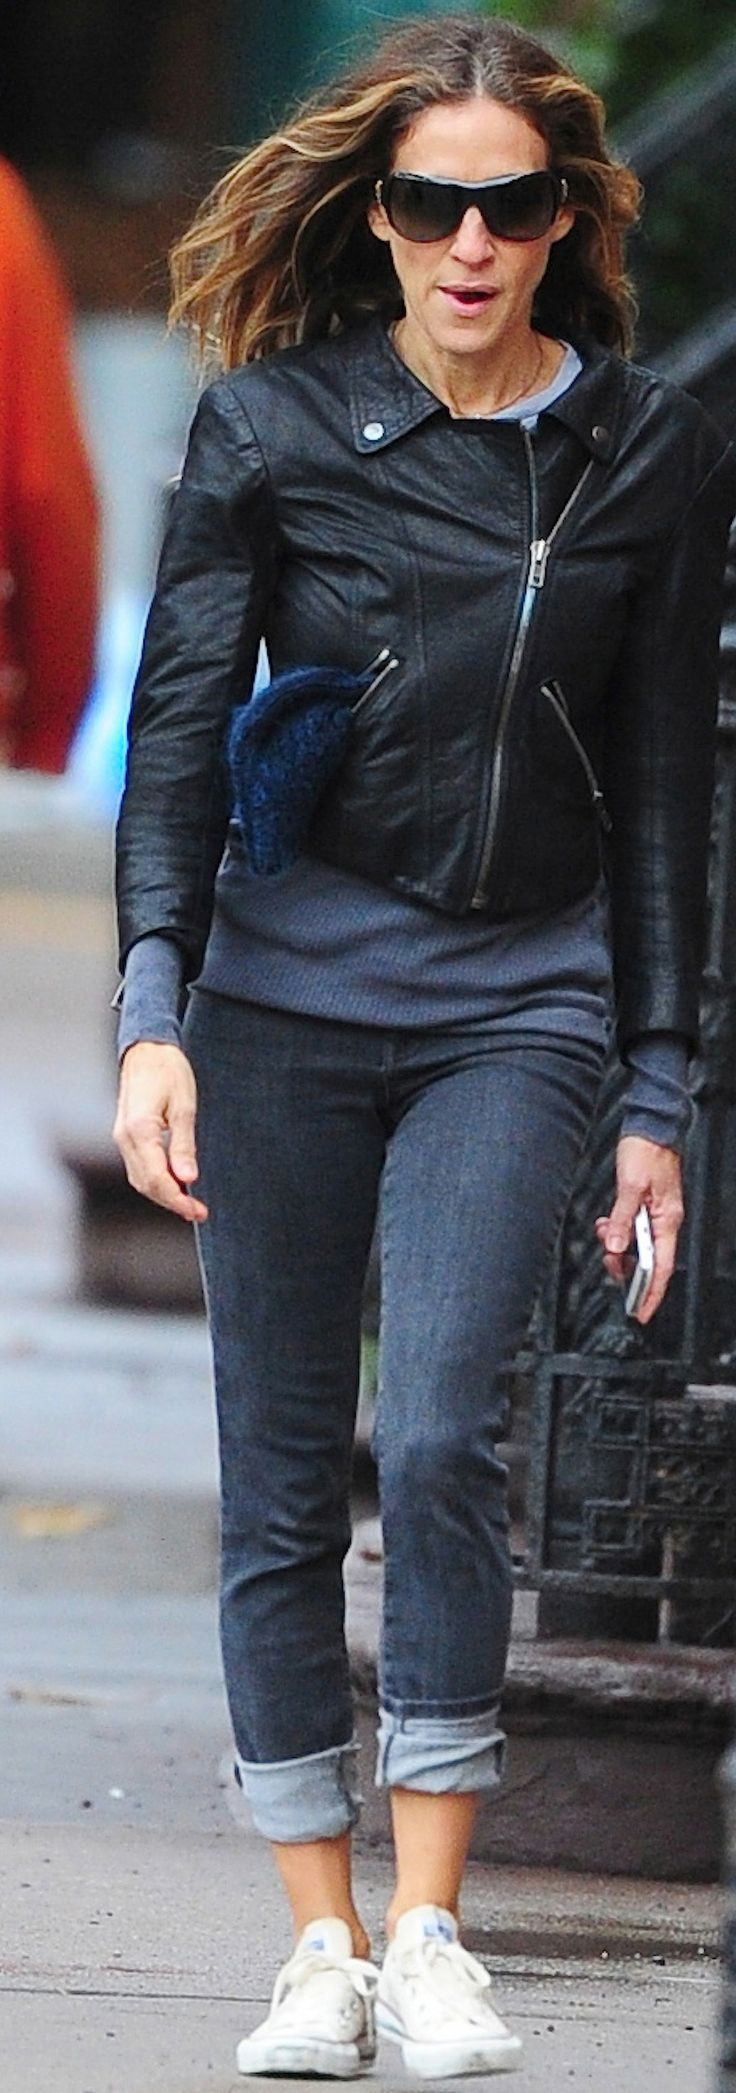 Finish jeans and a leather jacket with white Converse, a la Sarah Jessica Parker